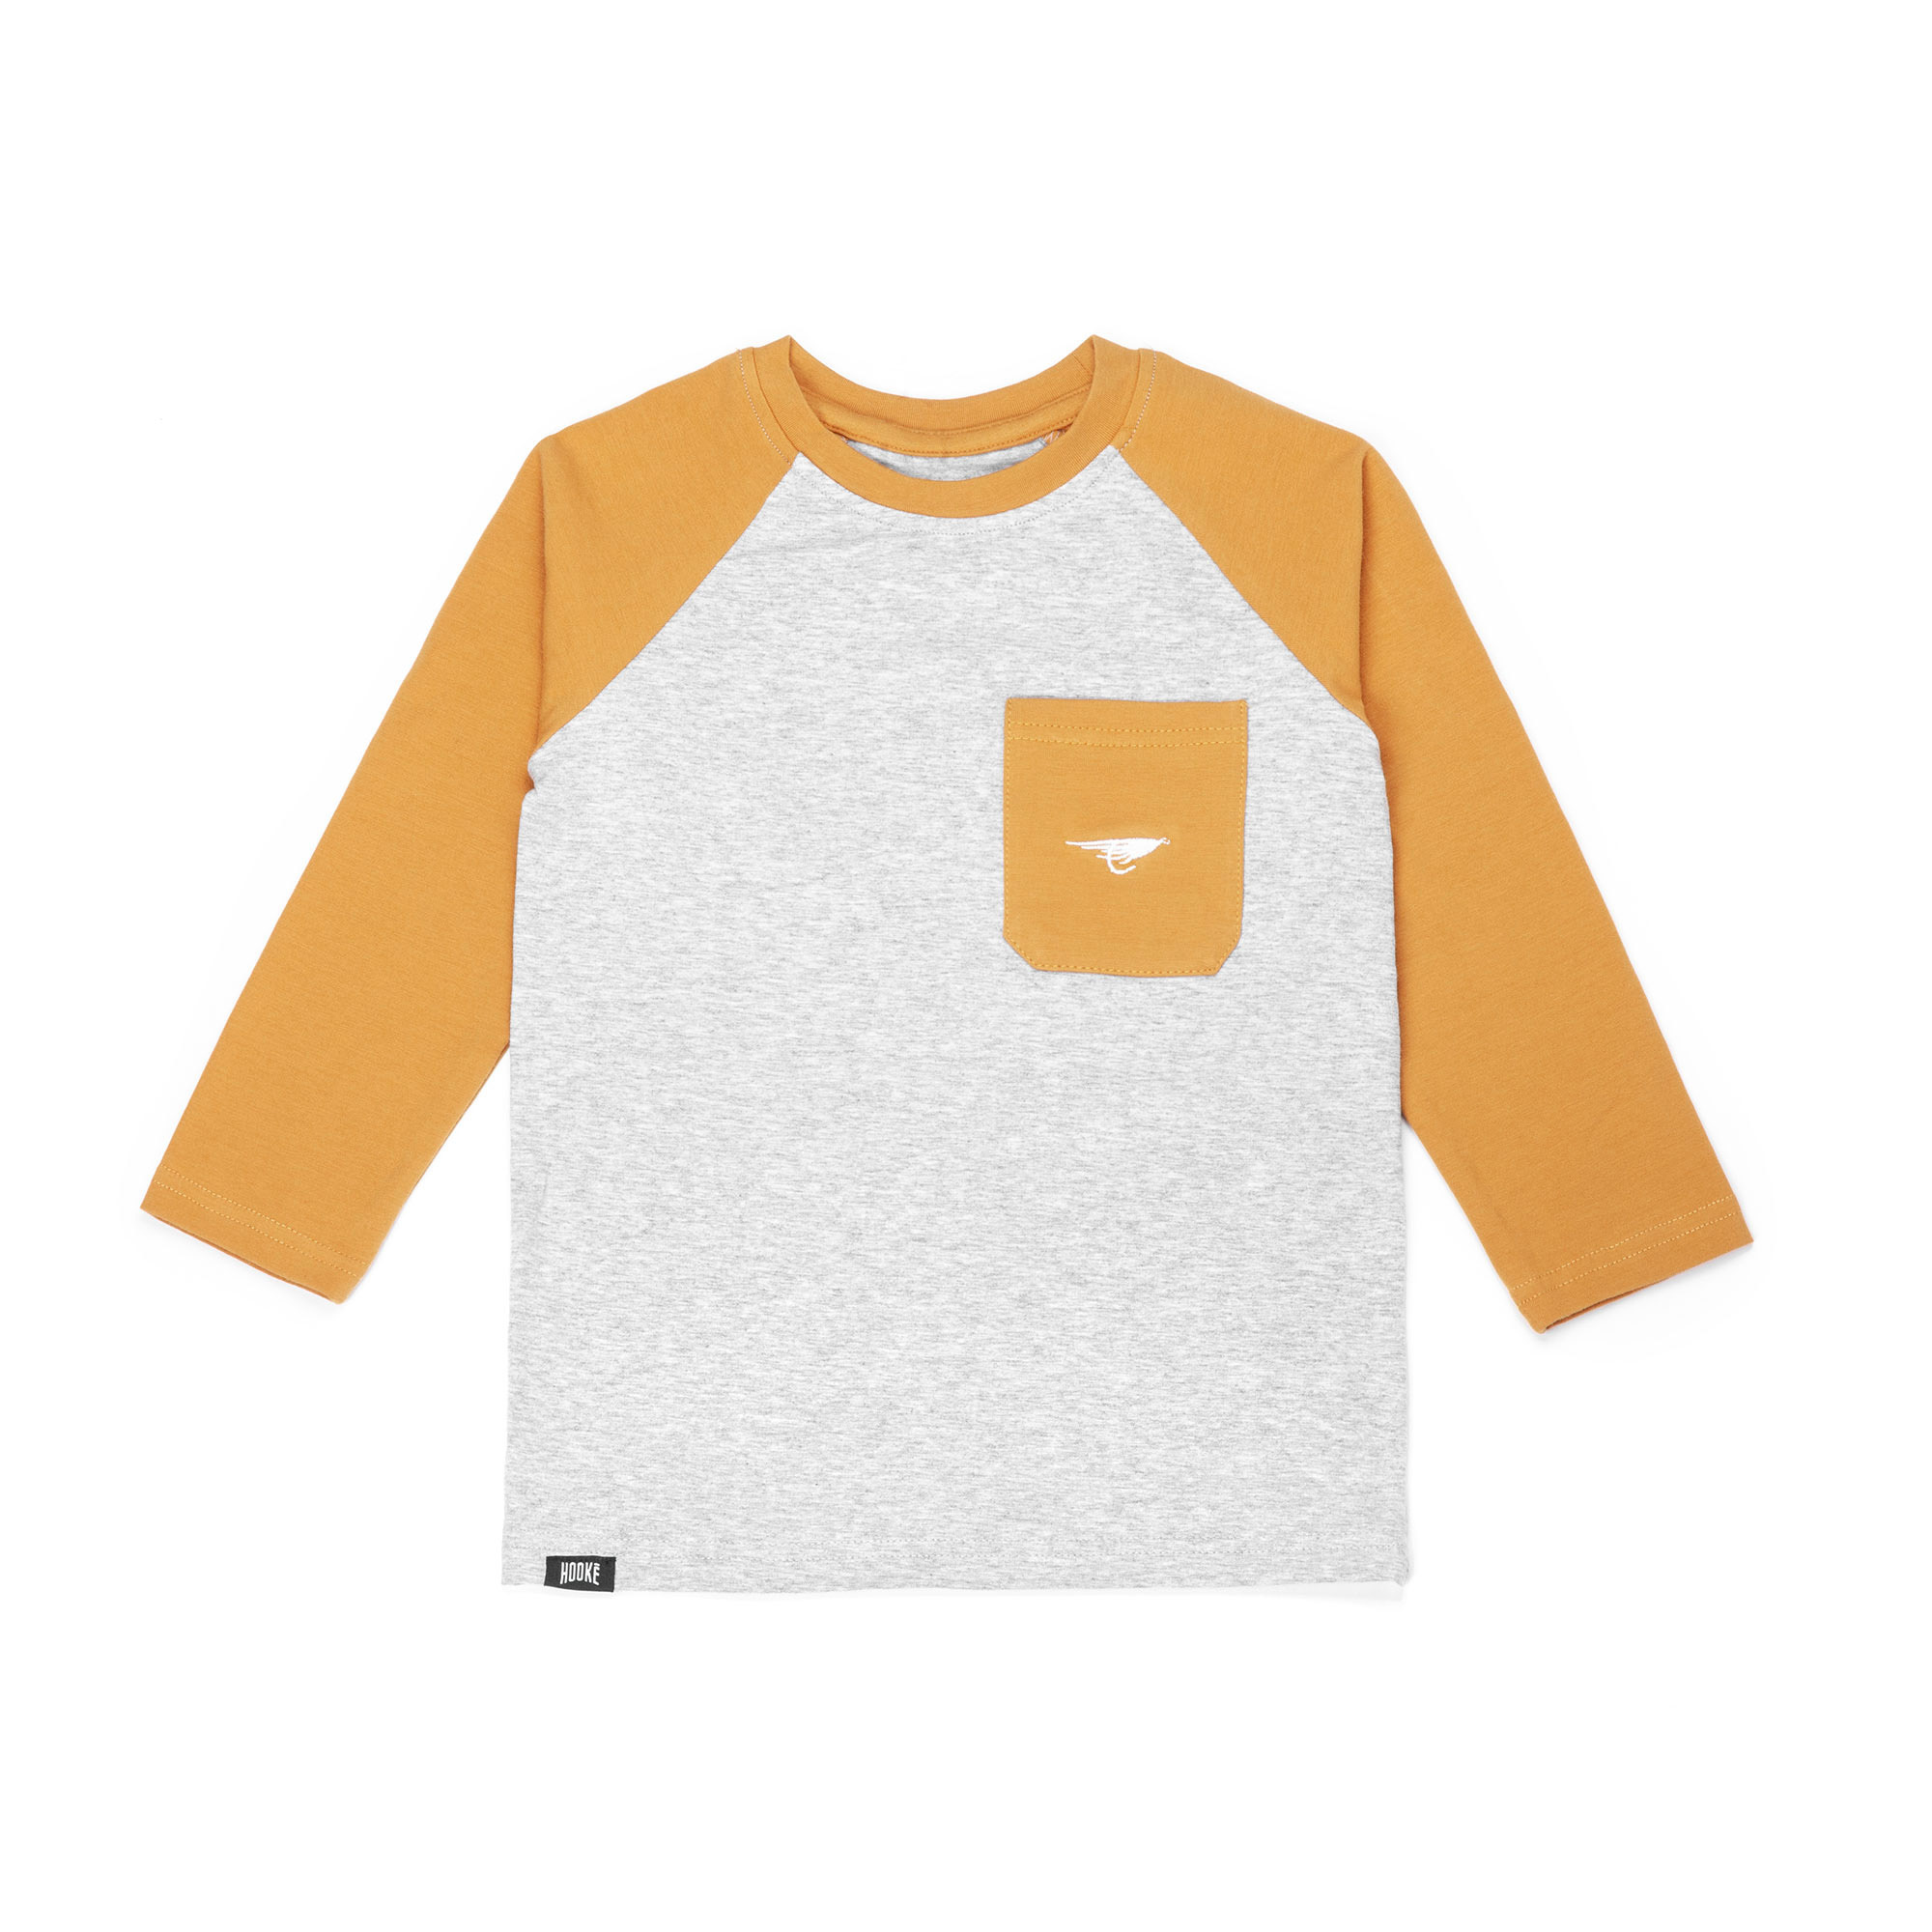 Raglan Fishing Club for Kids Yellow